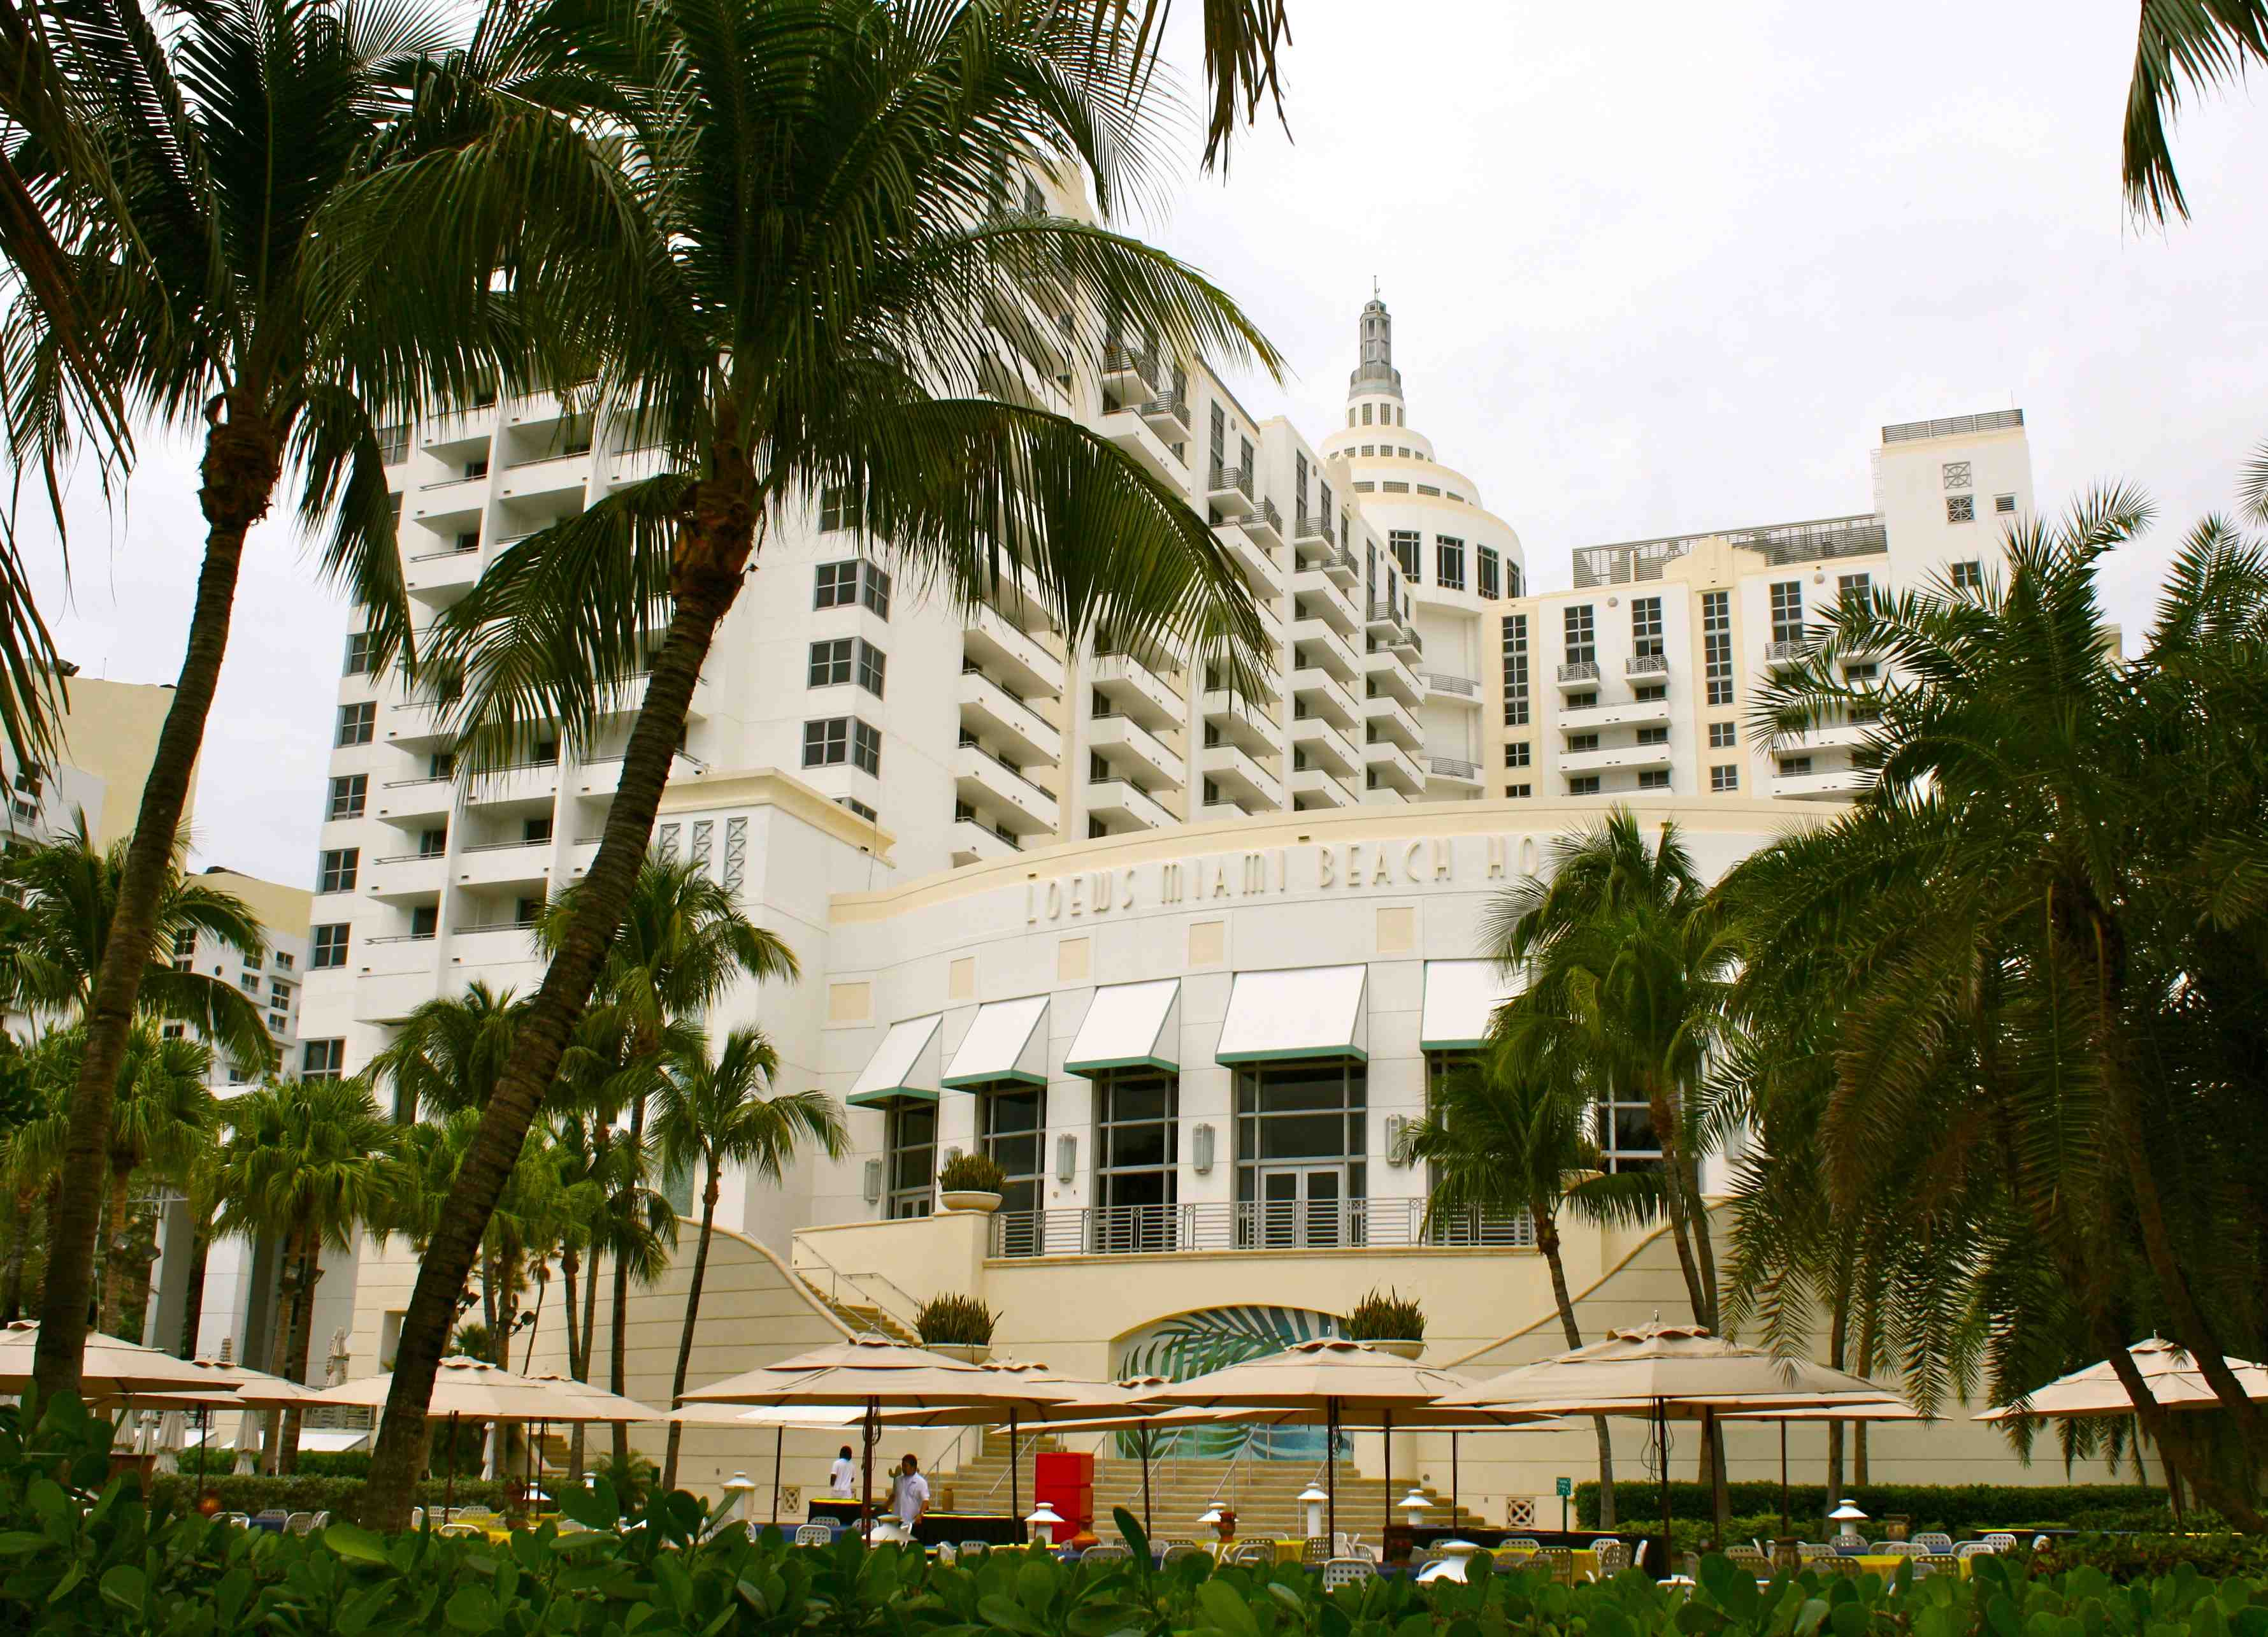 Lowes Miami Beach Hotel, Resort, Florida, South Beach